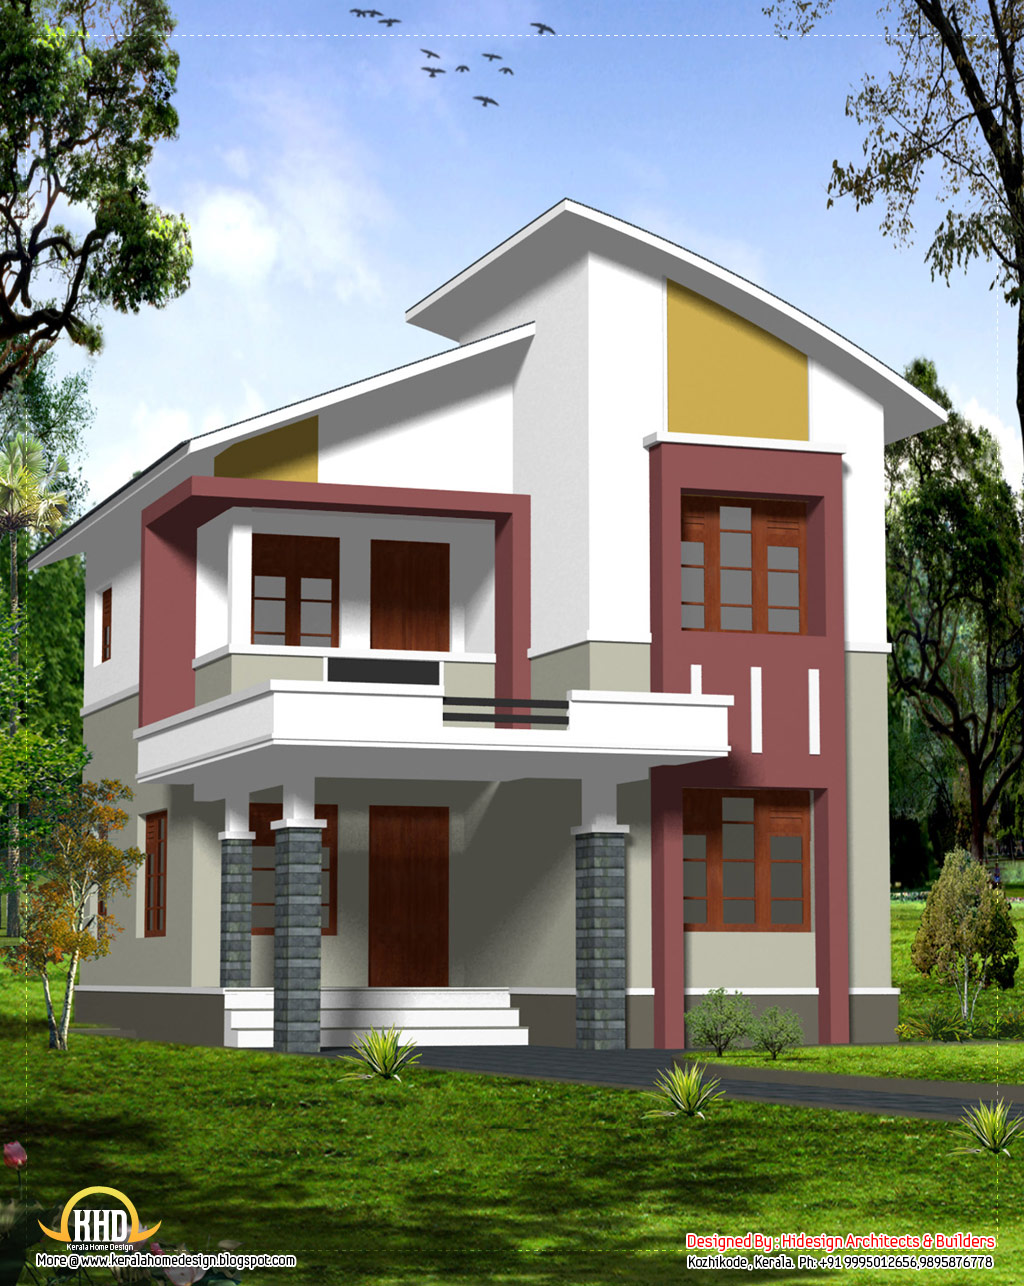 Budget home design 2140 sq ft kerala home design and for Residential remodeling